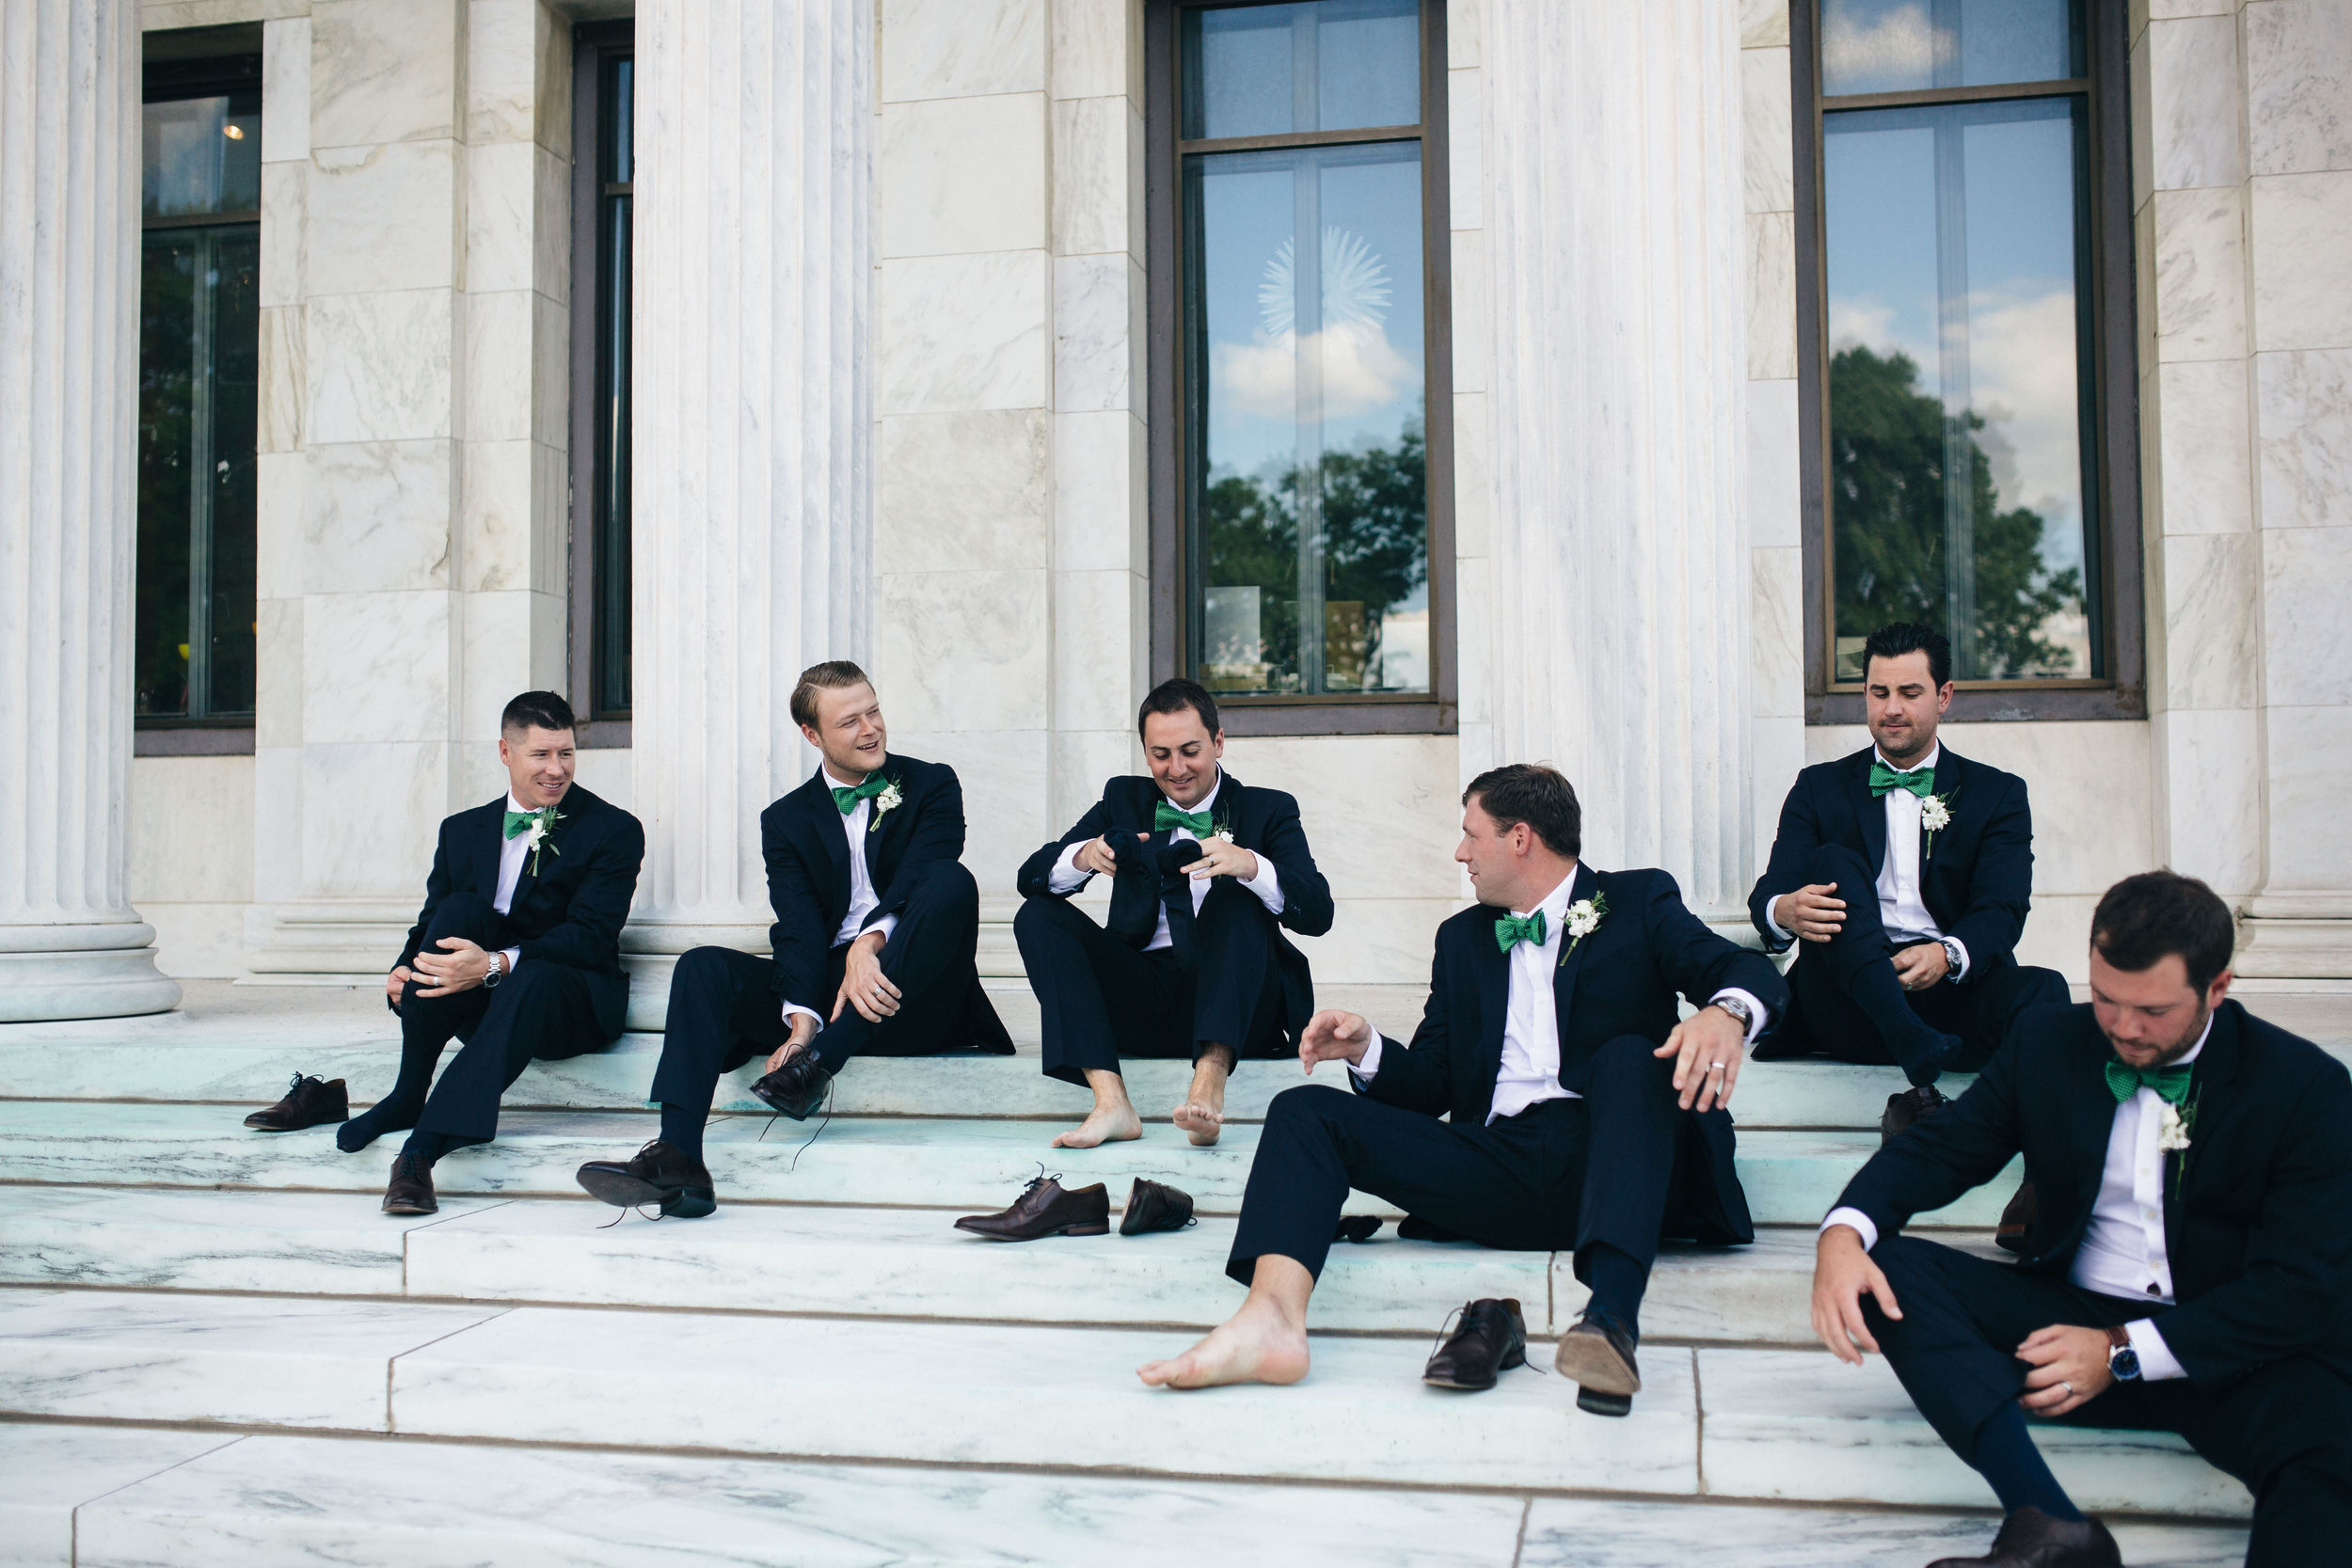 Groomsmen_on_Wedding_Day